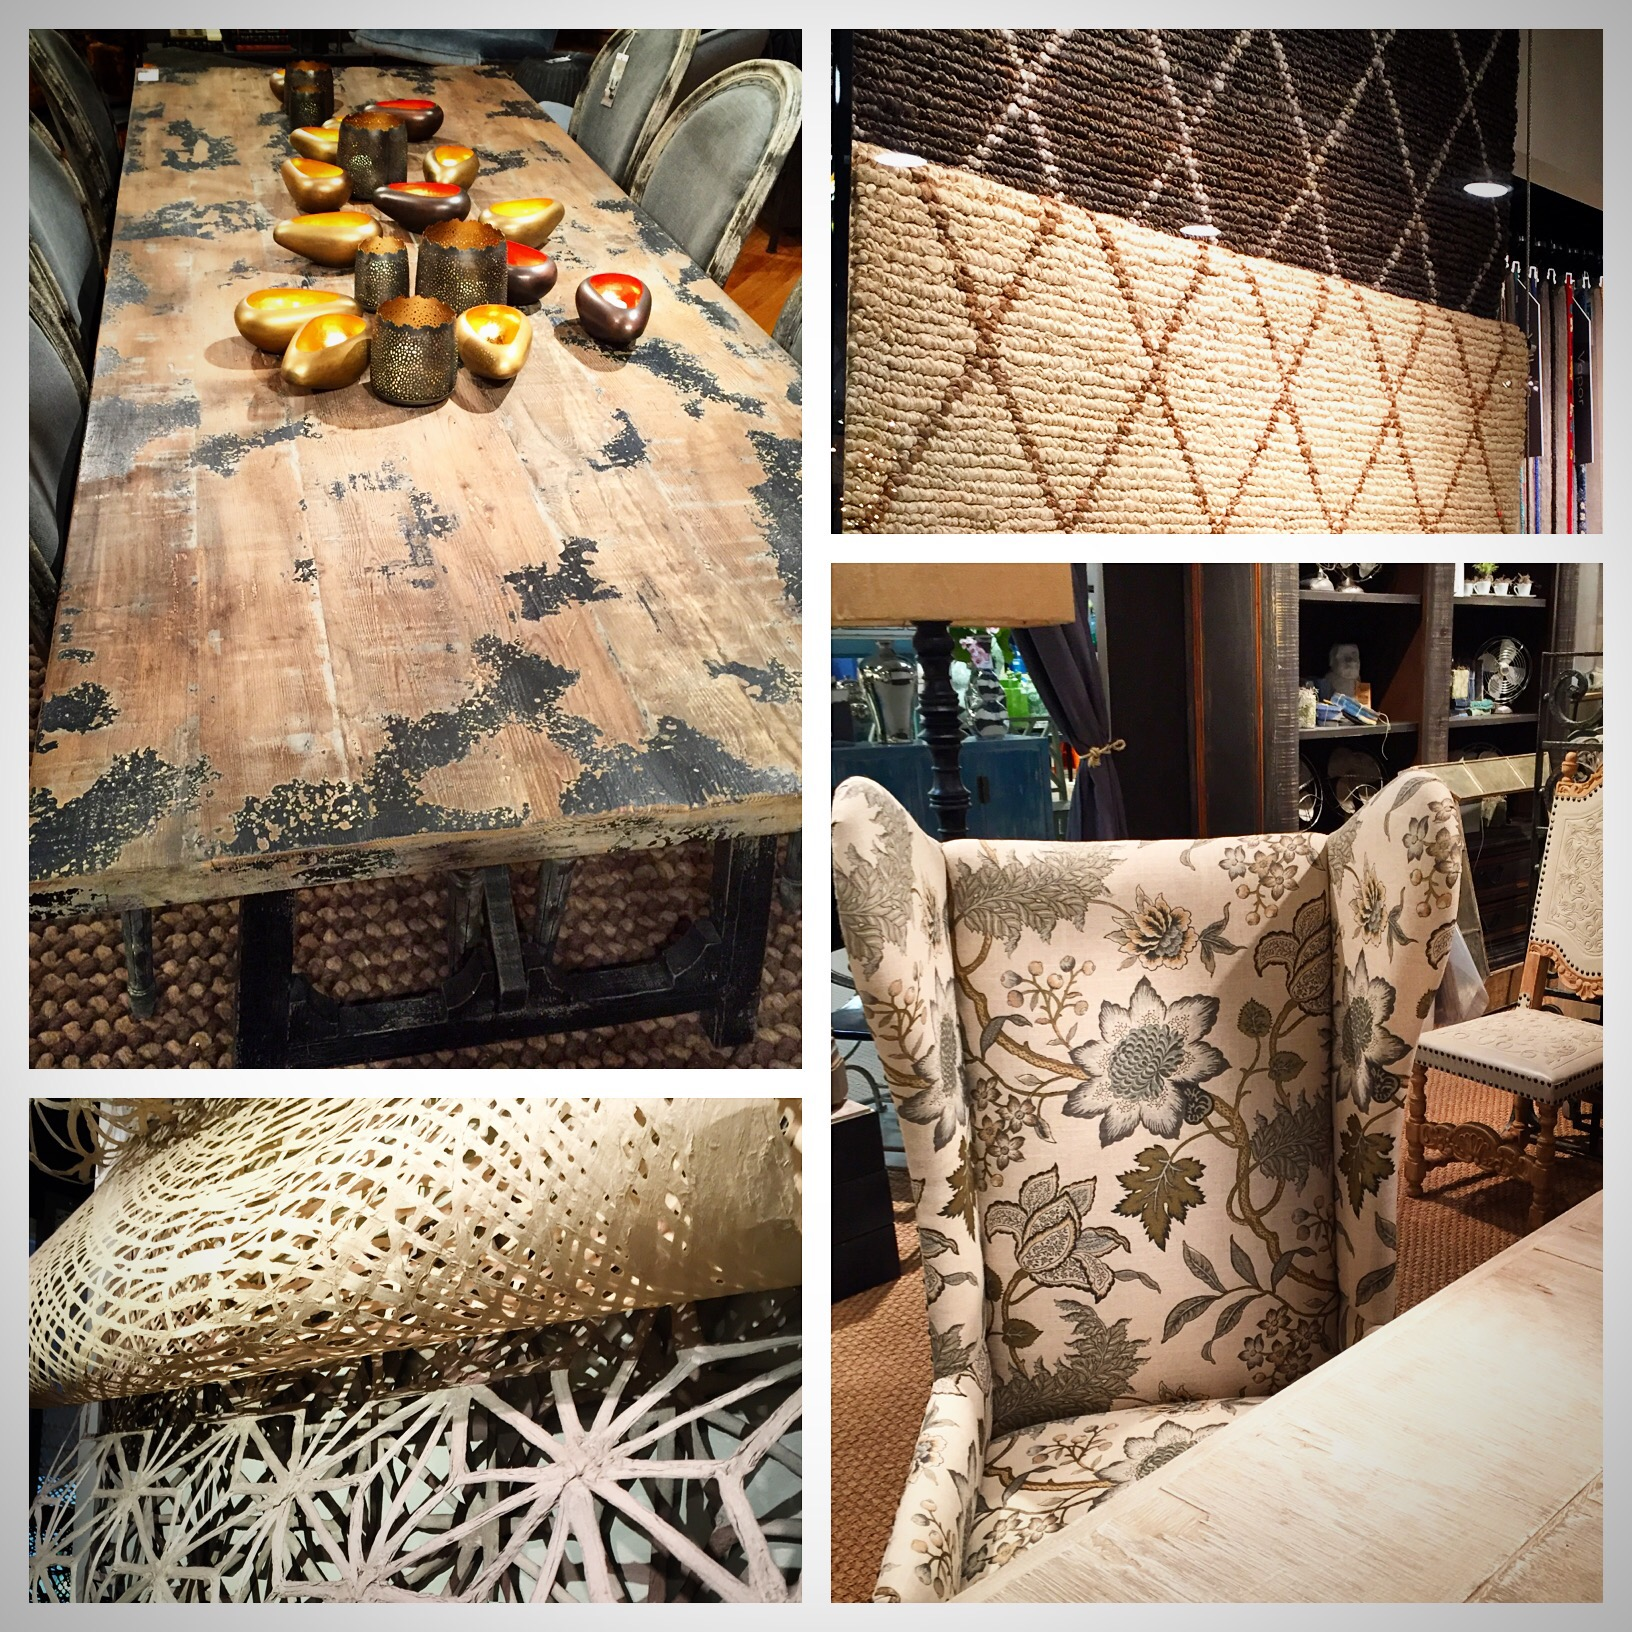 Is This The Same High Point Furniture Market: Sneak Peek High Point Furniture Market NC